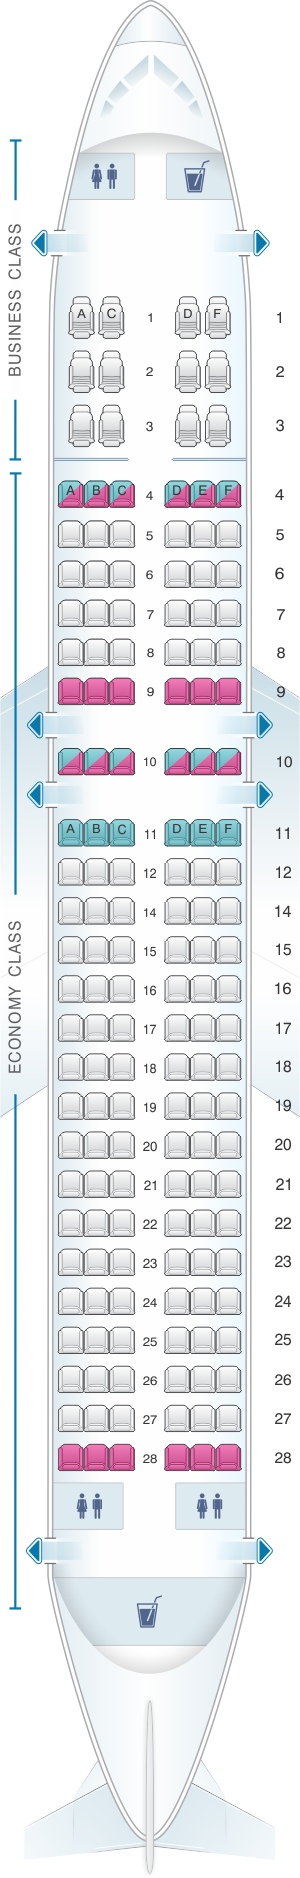 Seat map for Ural Airlines Airbus A320